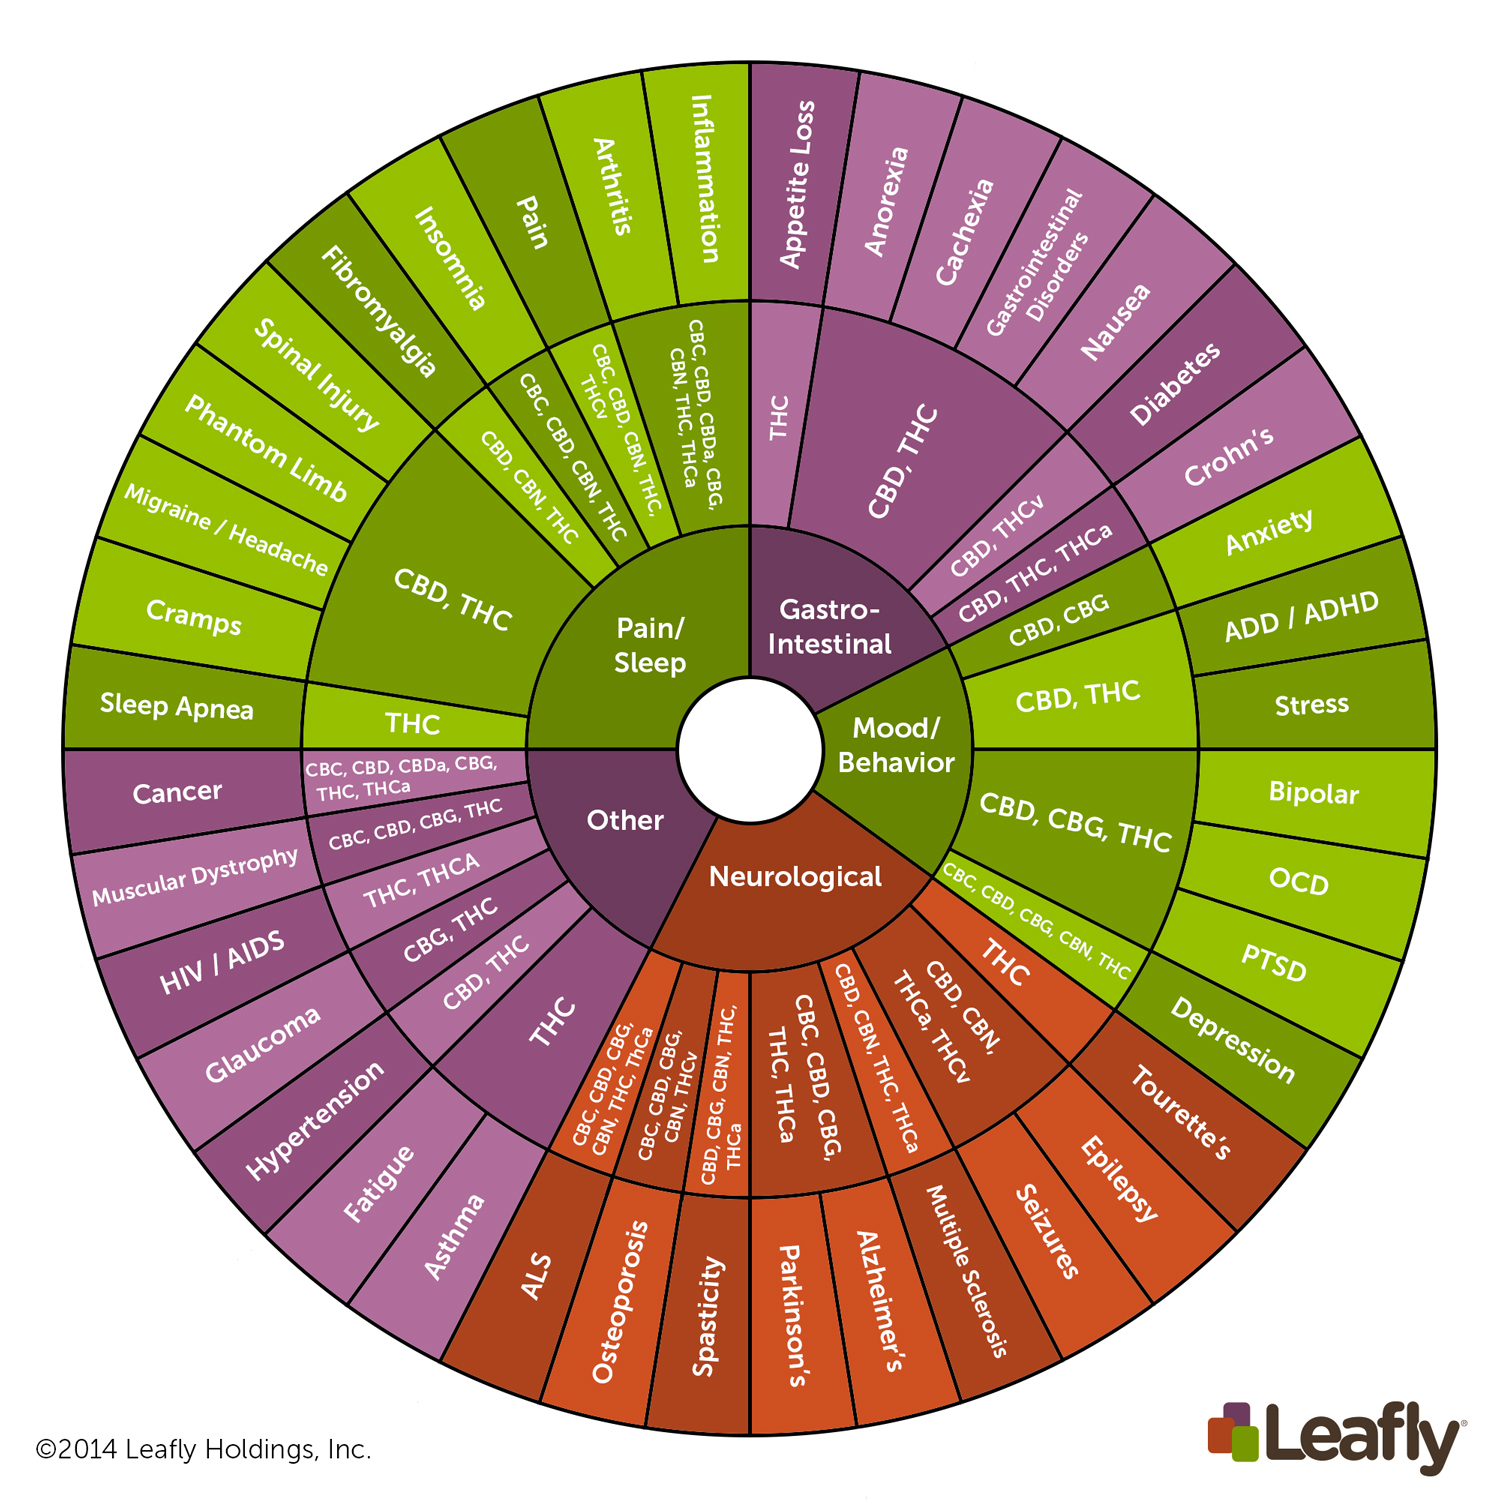 Infographic Credit: Leafly